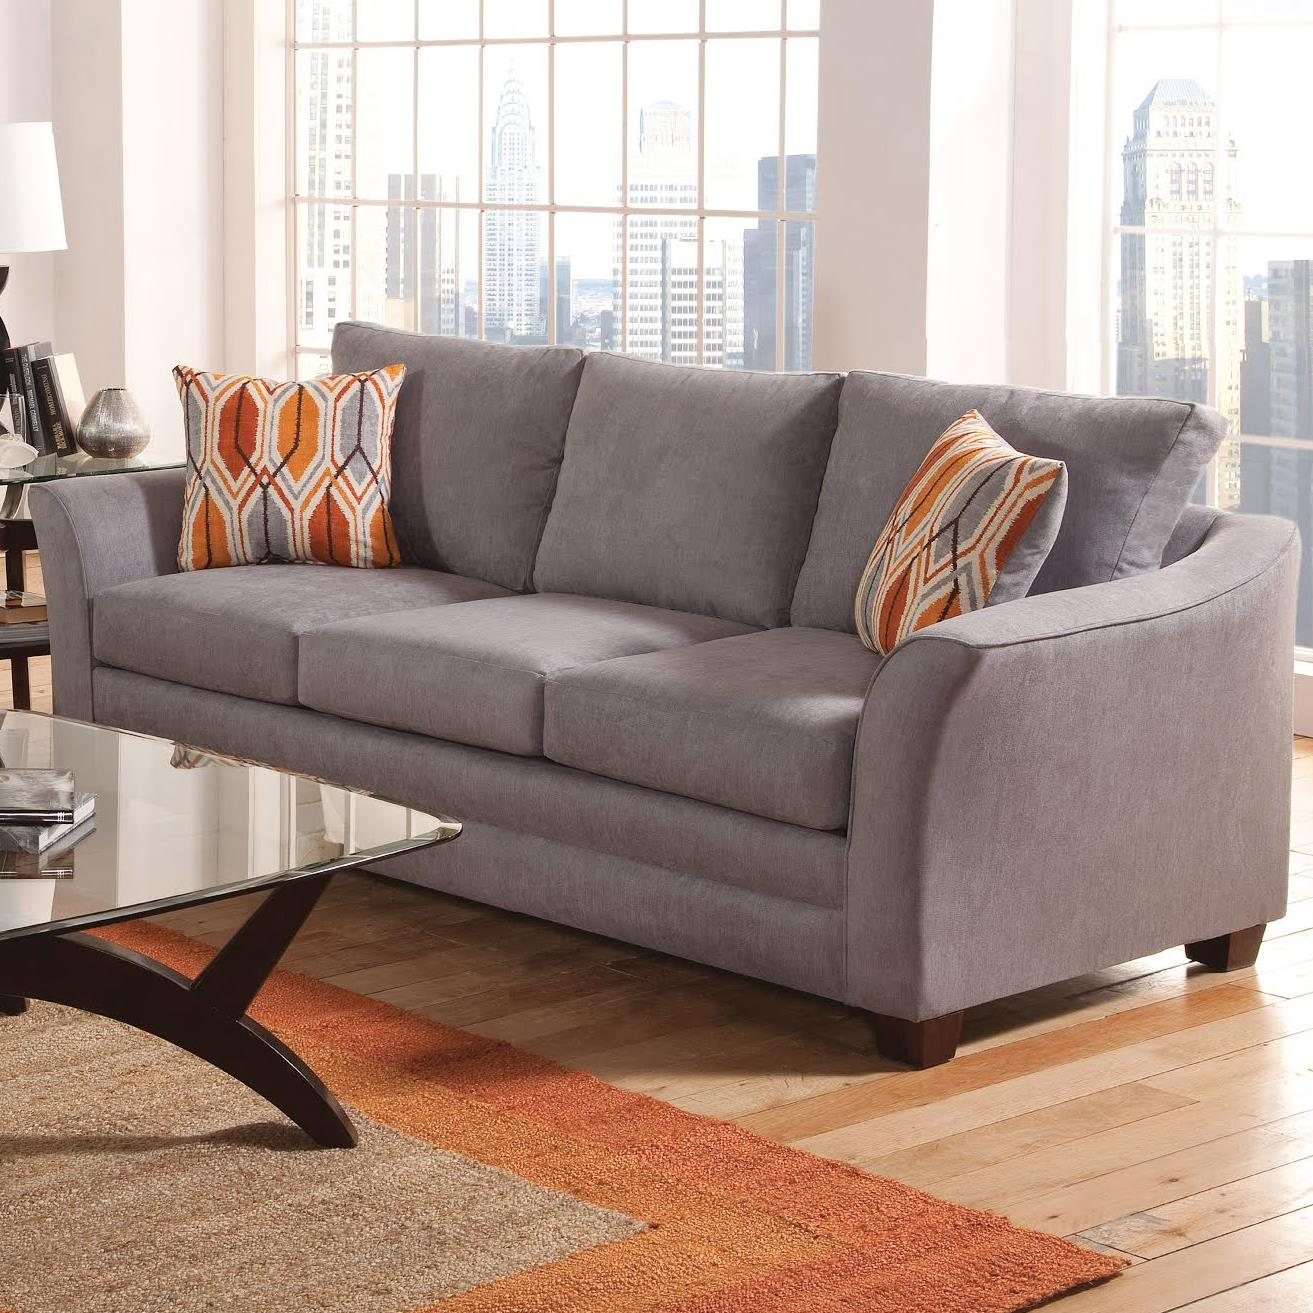 Hatfield Sofa by VFM Essentials at Virginia Furniture Market